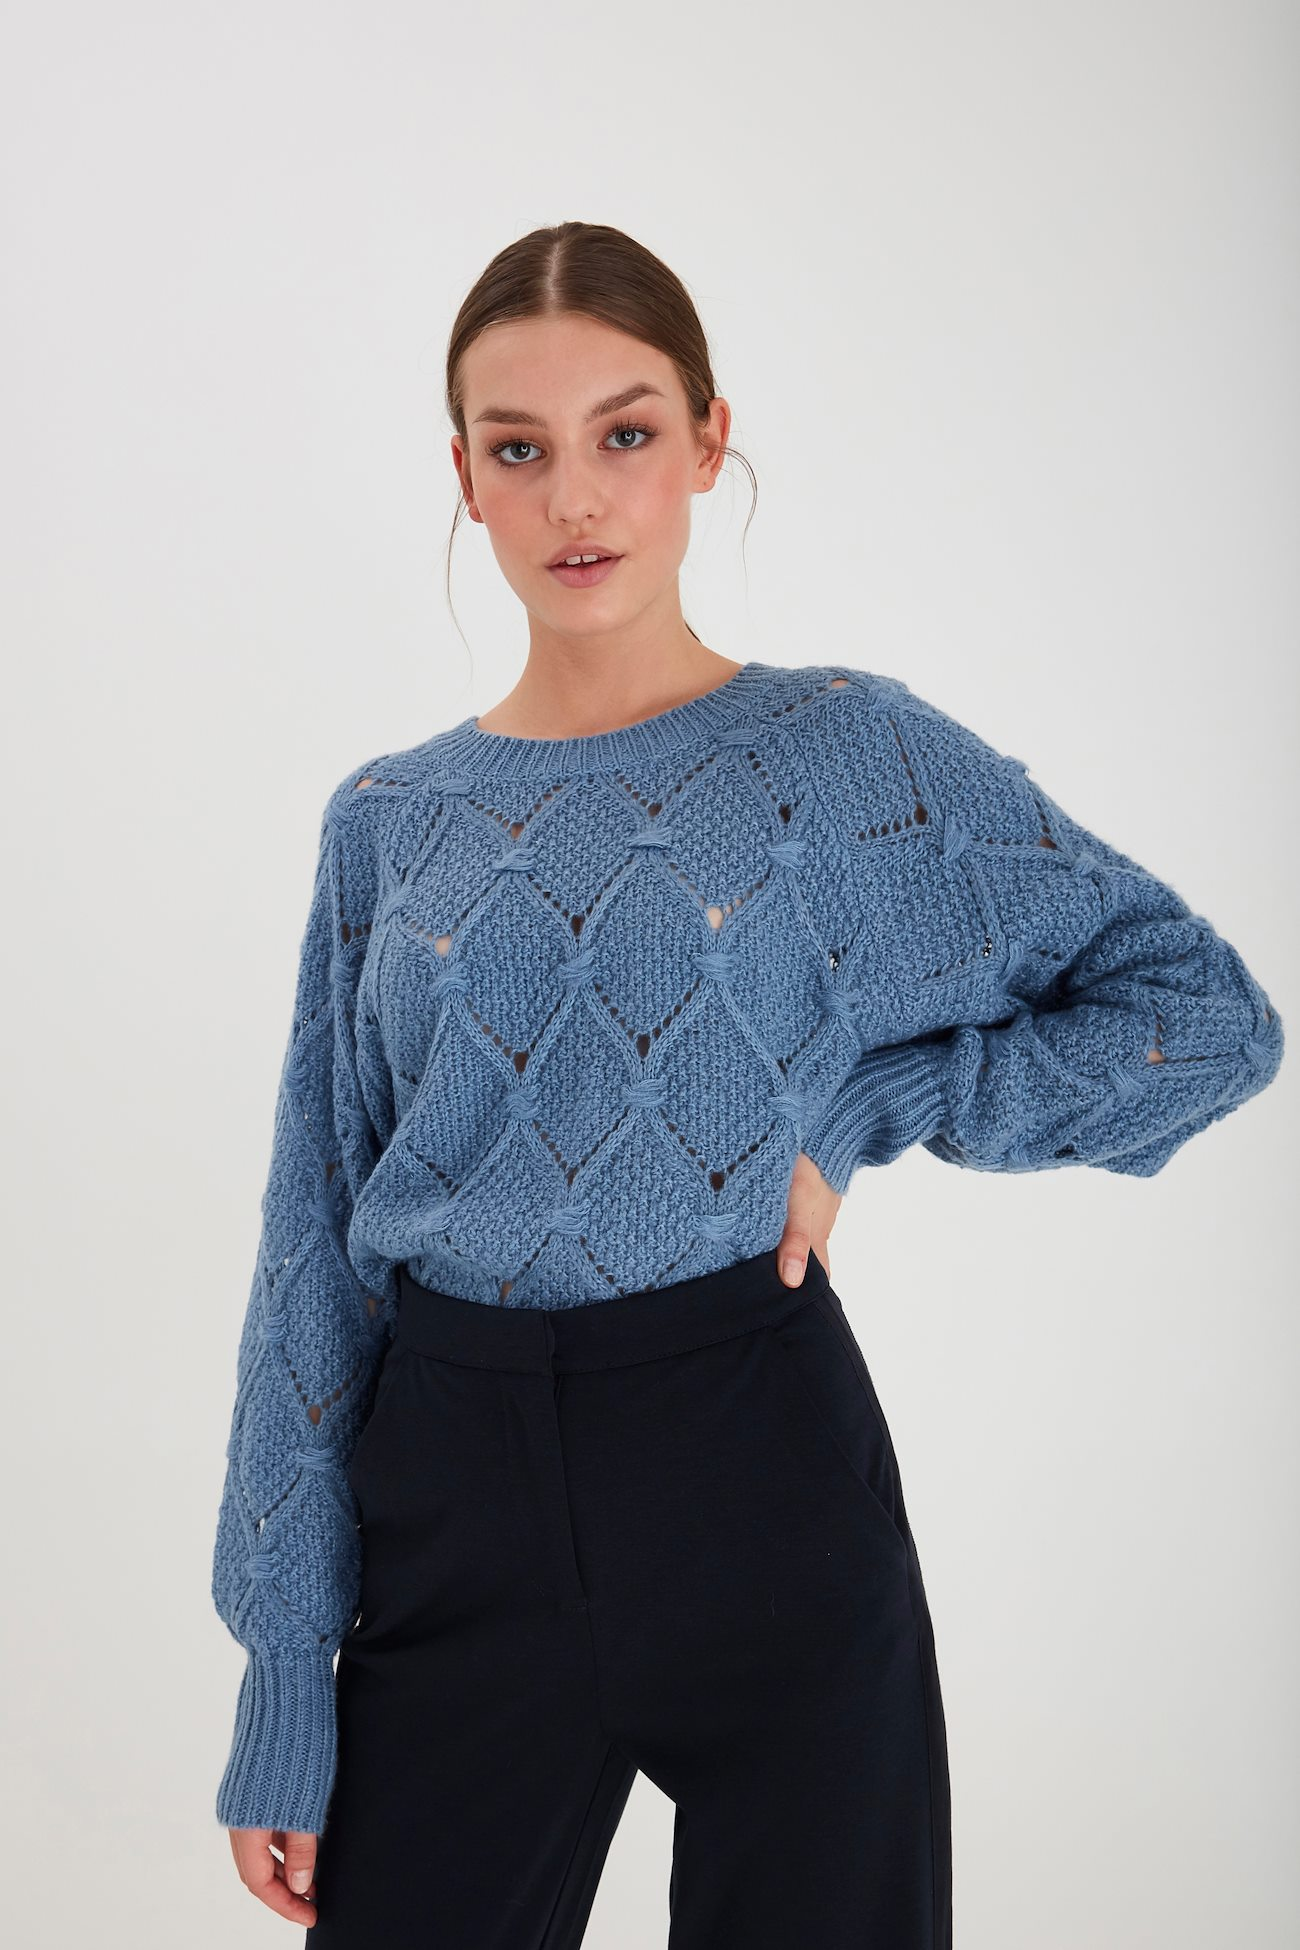 riviera-knitted-pullover2